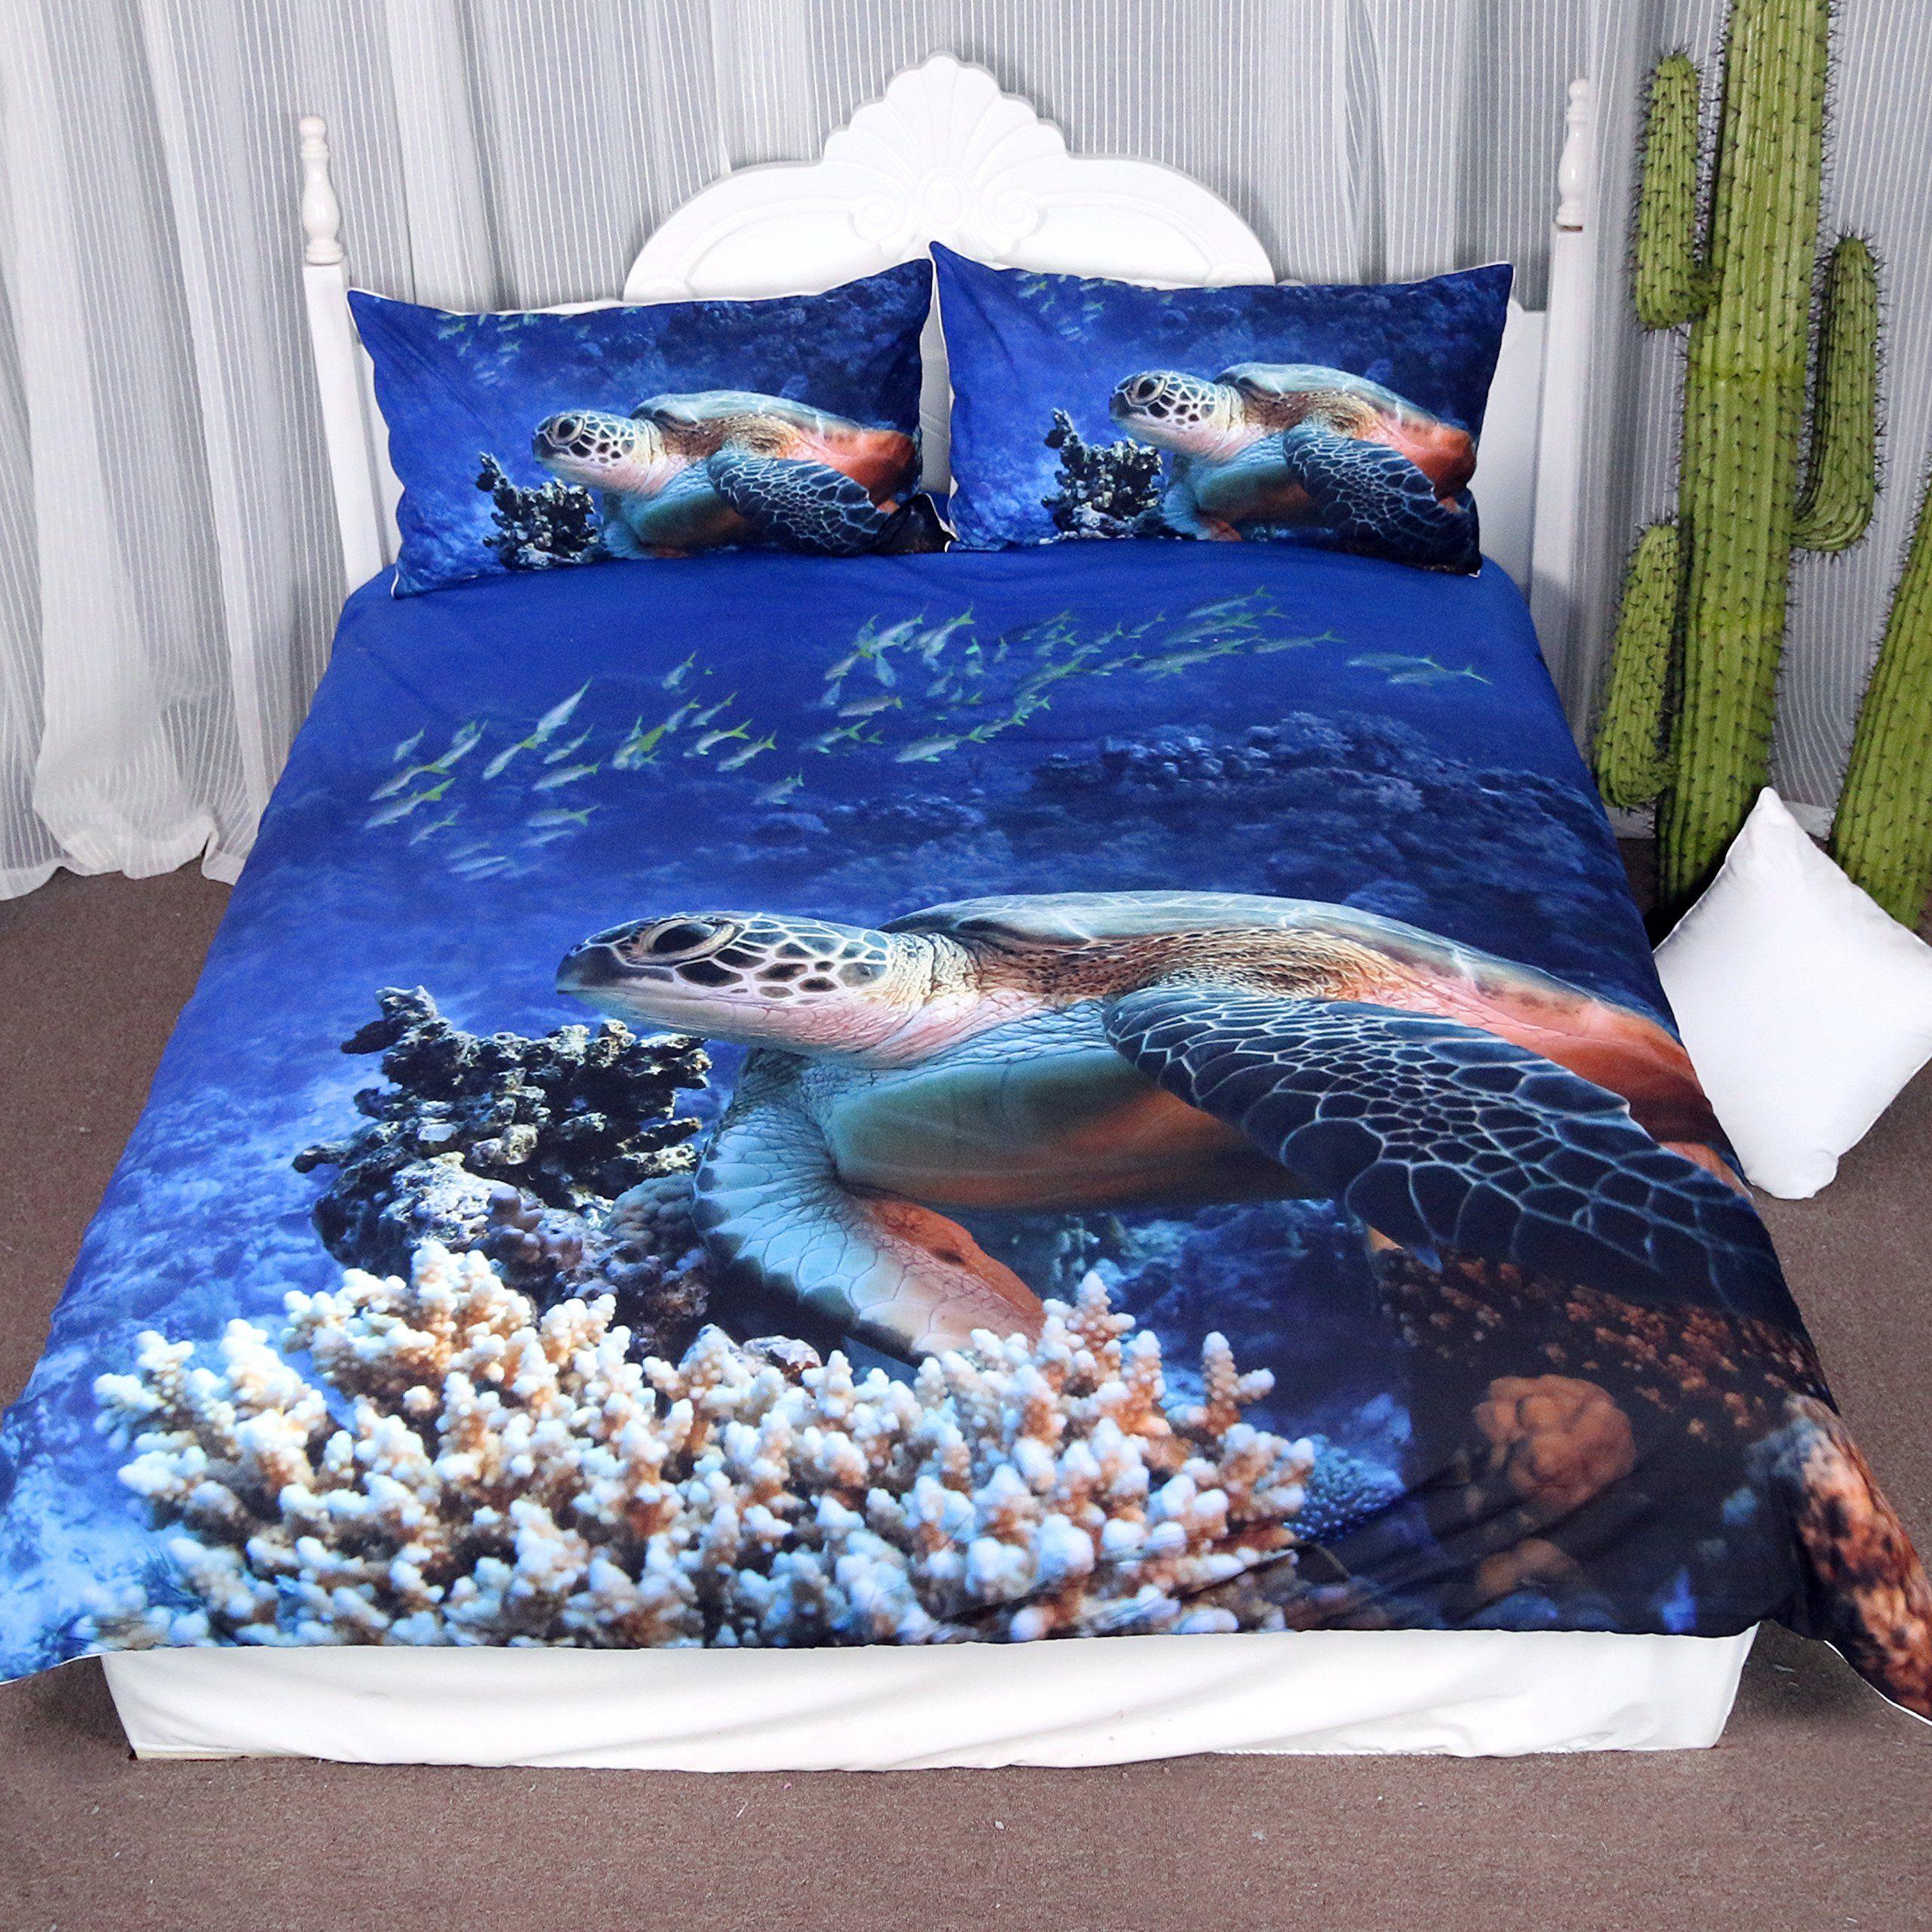 Fish Quilted Bedspread /& Pillow Shams Set Tropical Turtle Water Print